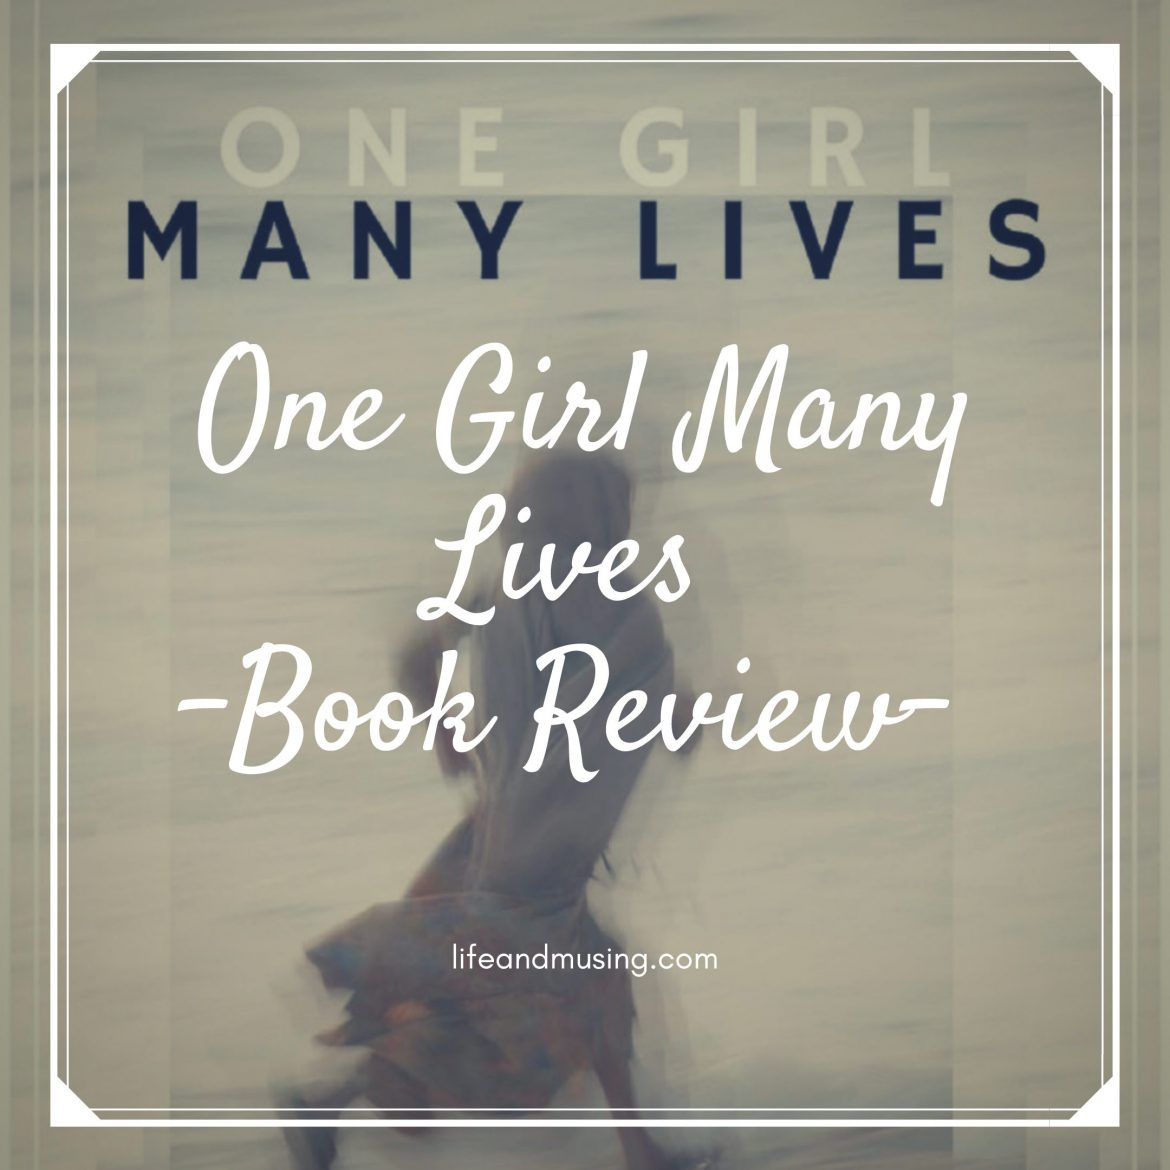 Book Review on 'One Girl Many Lives.'